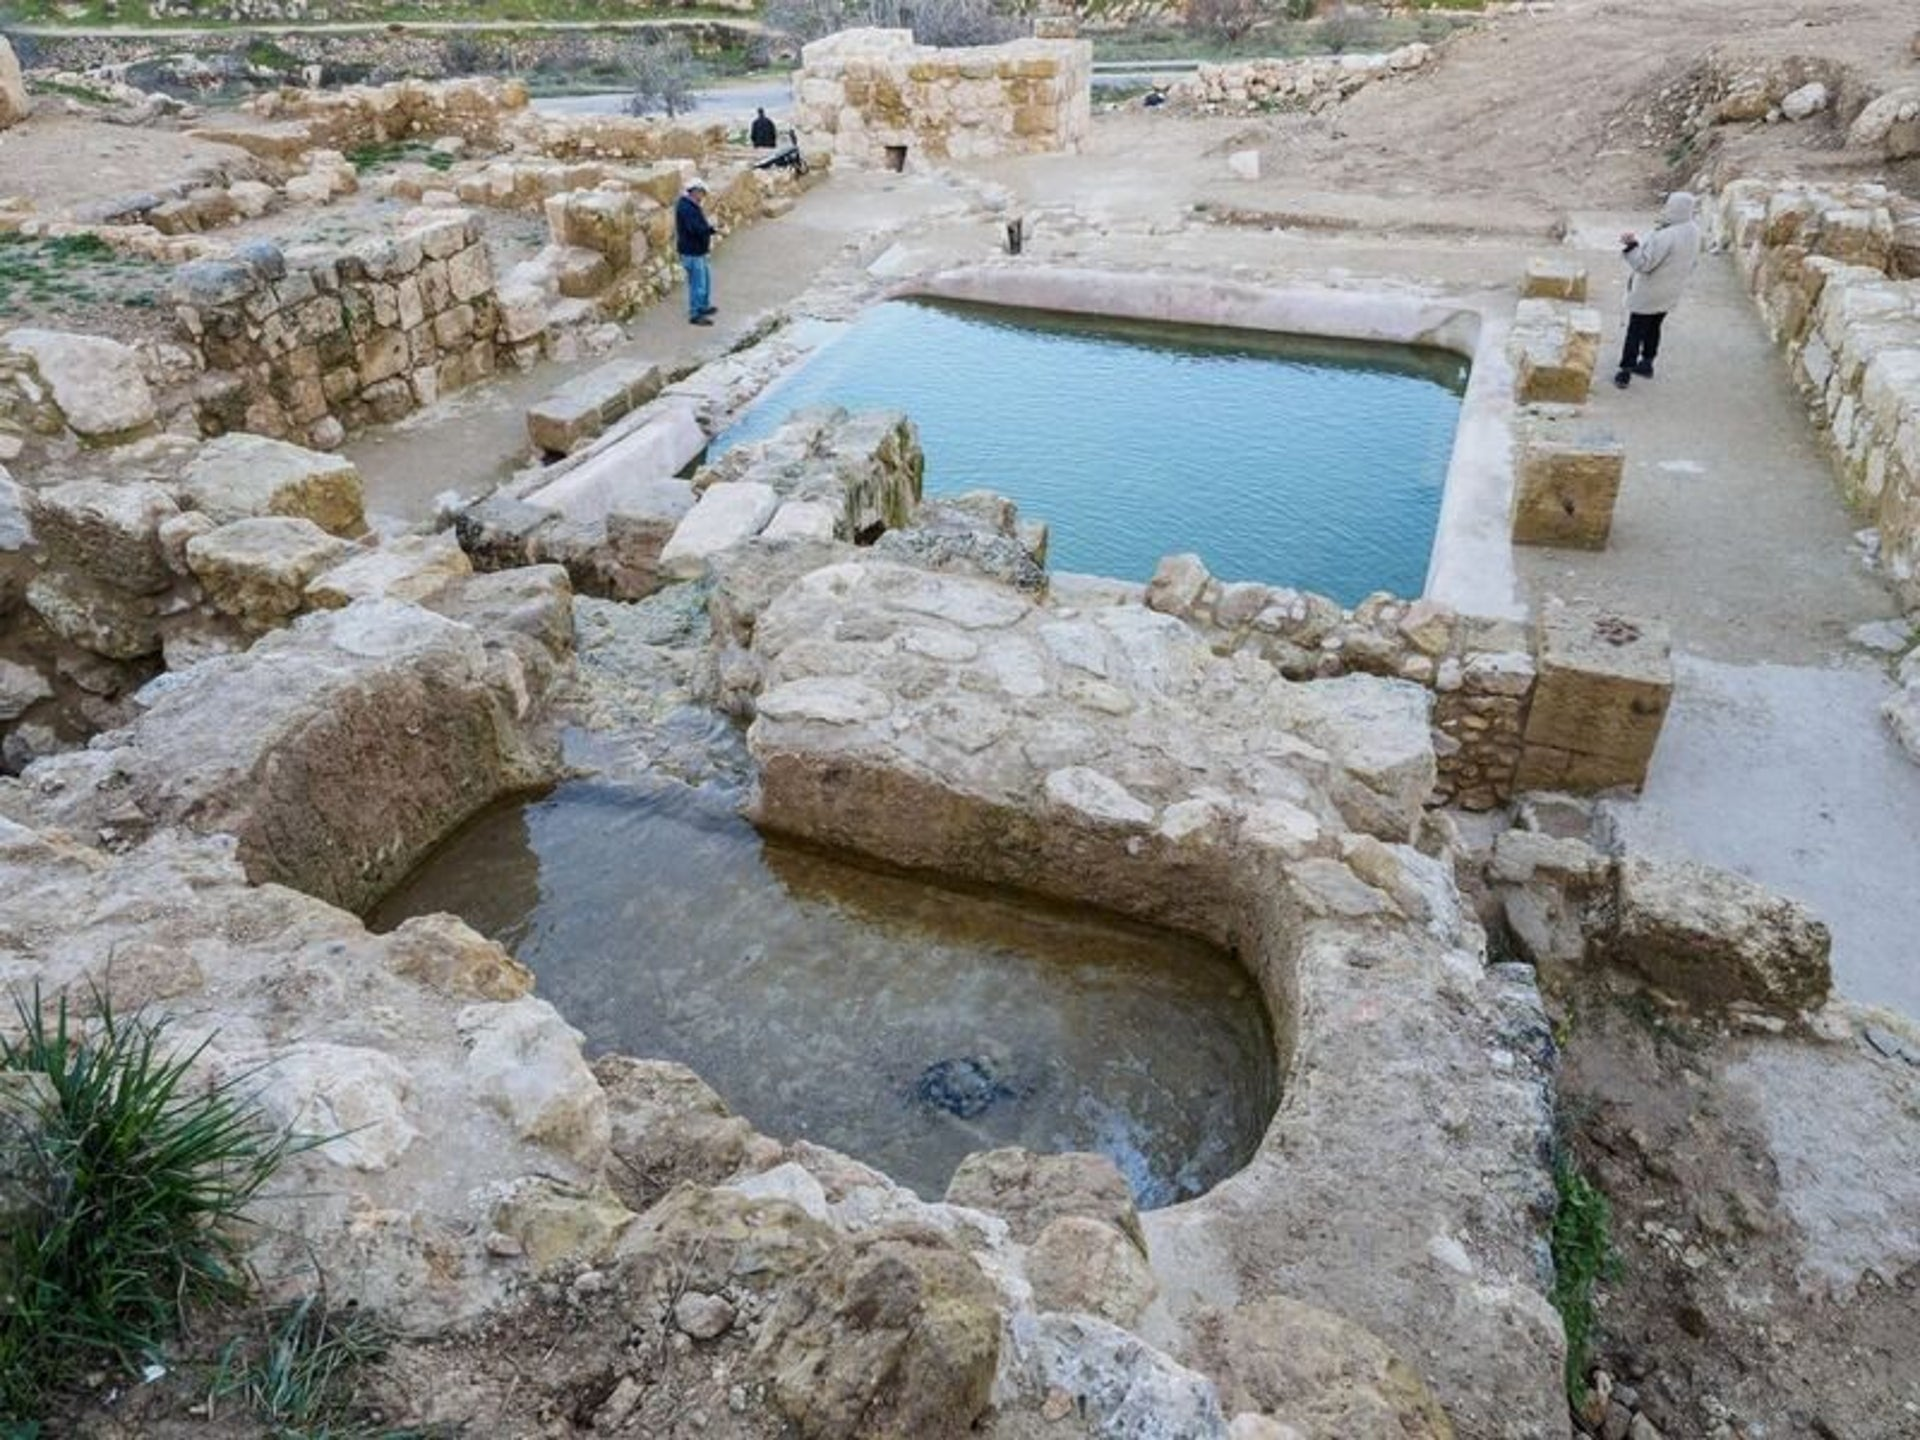 Two of the pools at Ein Hanya nature park in the Judean Hills, near Jerusalem.